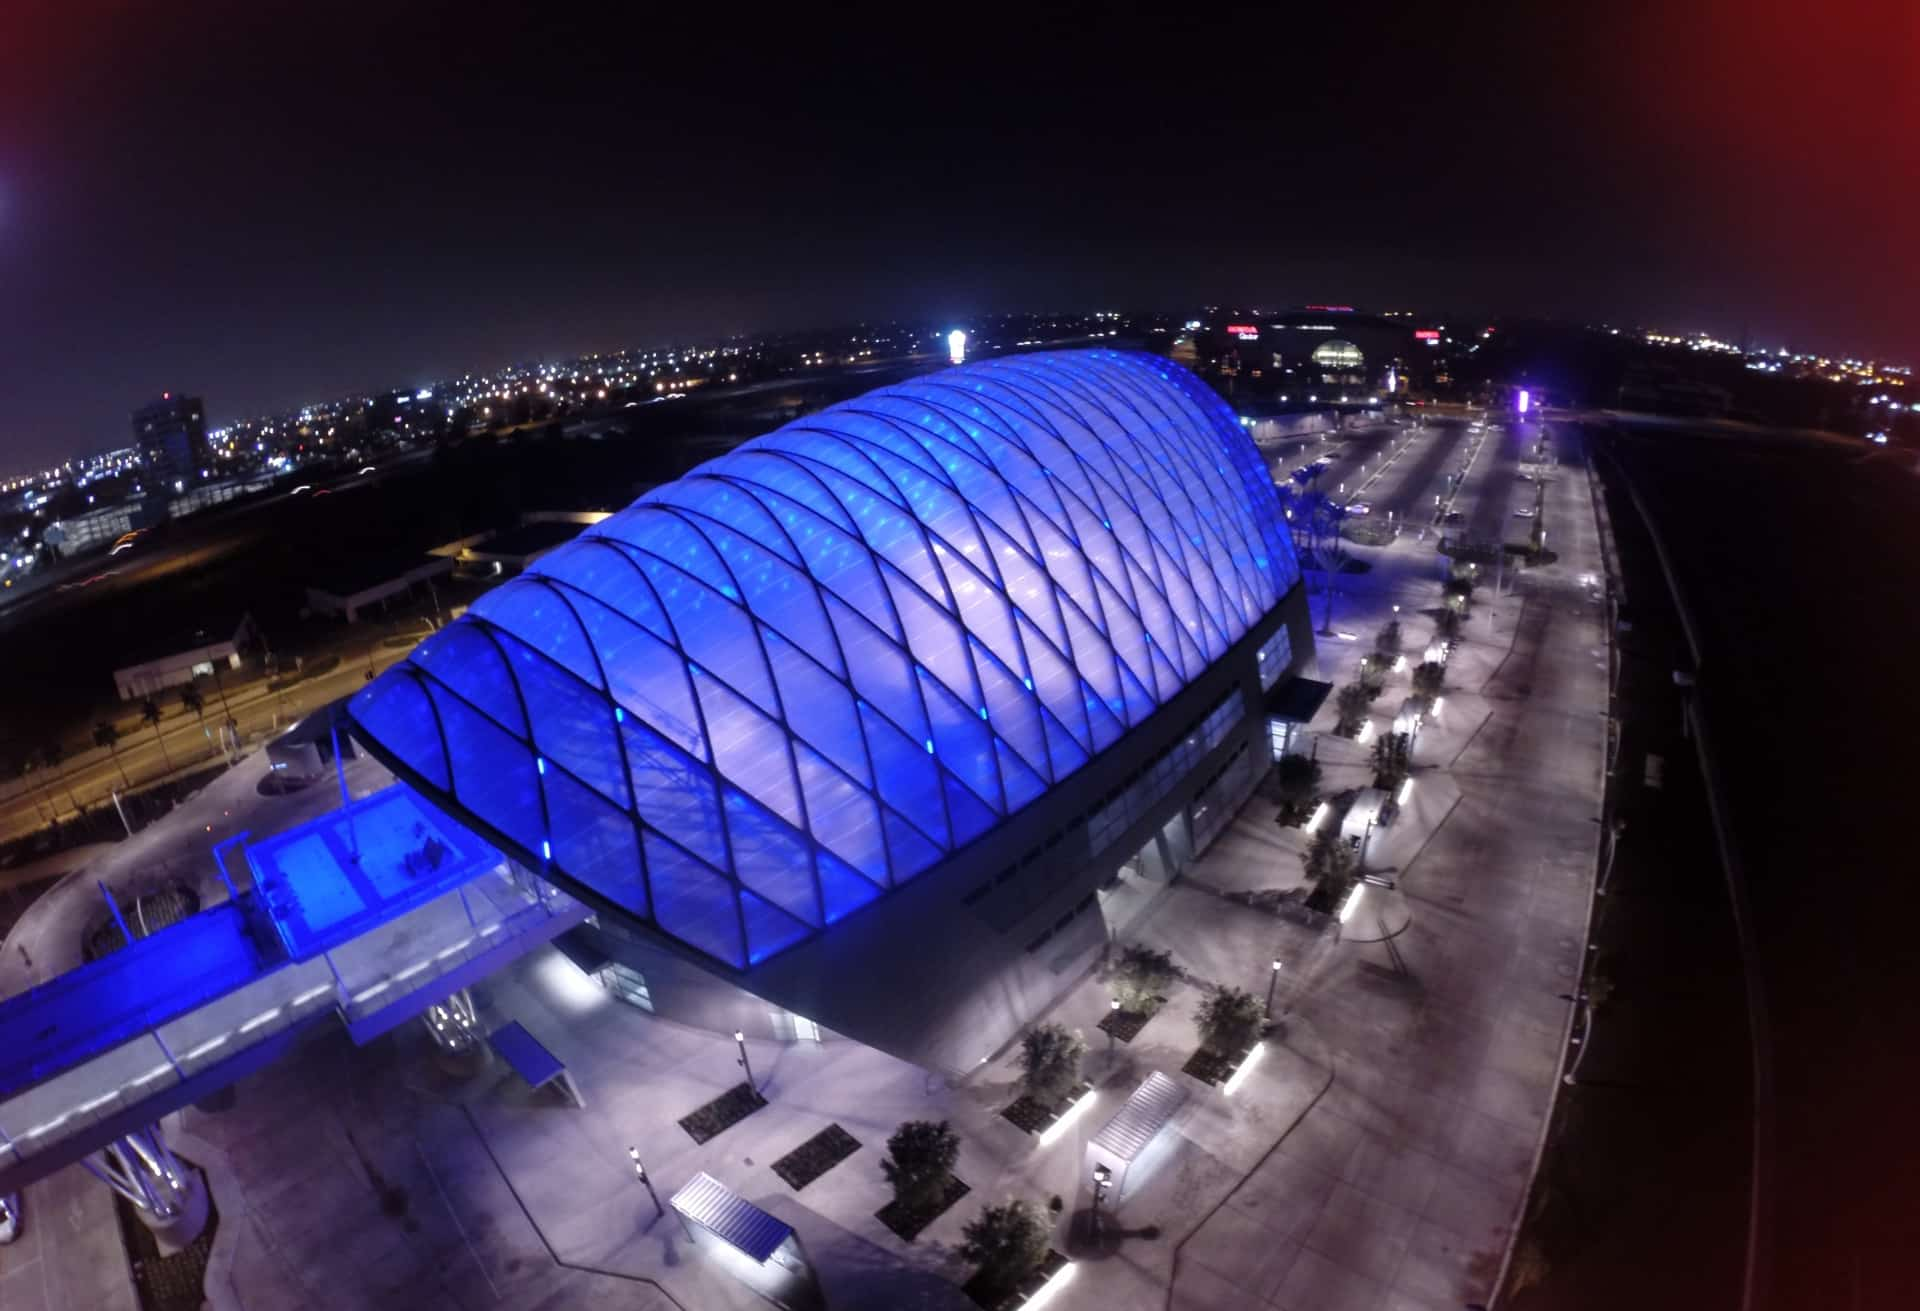 Illuminated aerial image showing the magnitude of the lightweight ETFE design